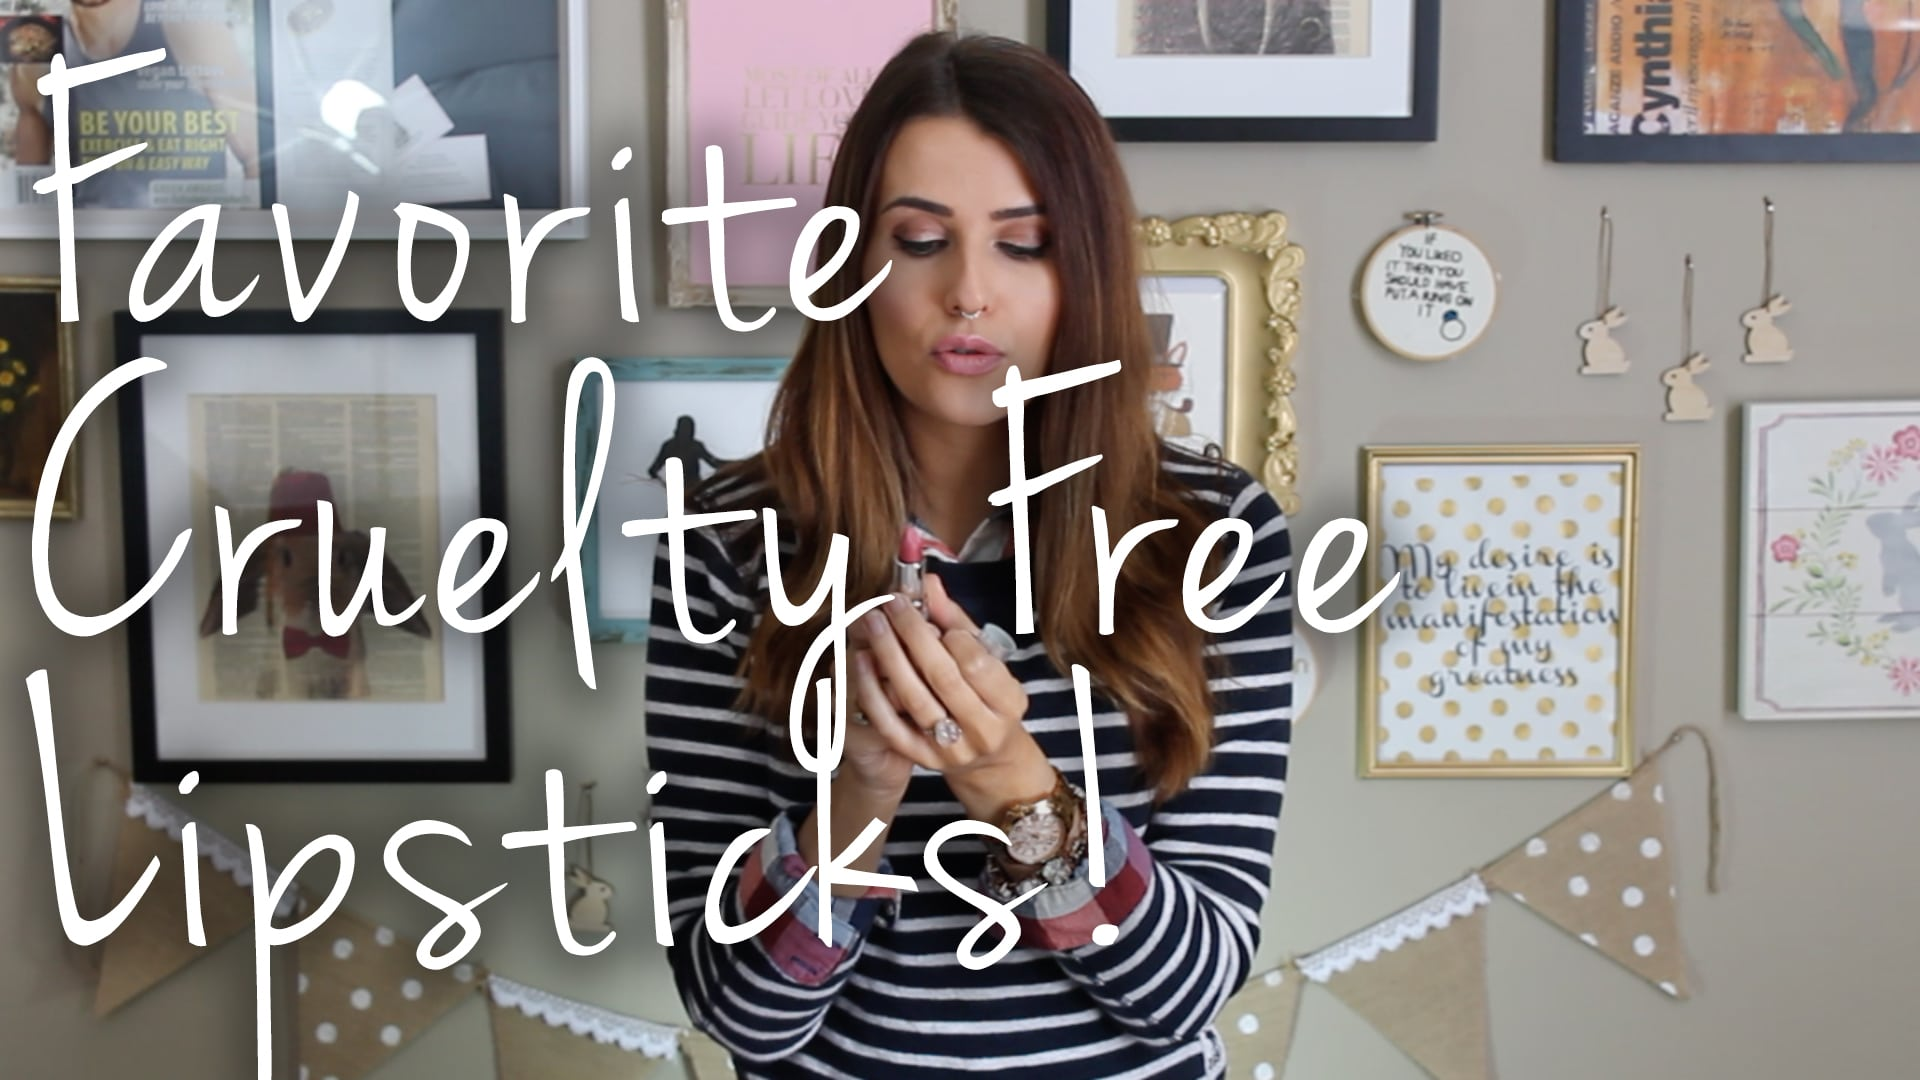 My Favorite Cruelty Free Lipstick Brands Video